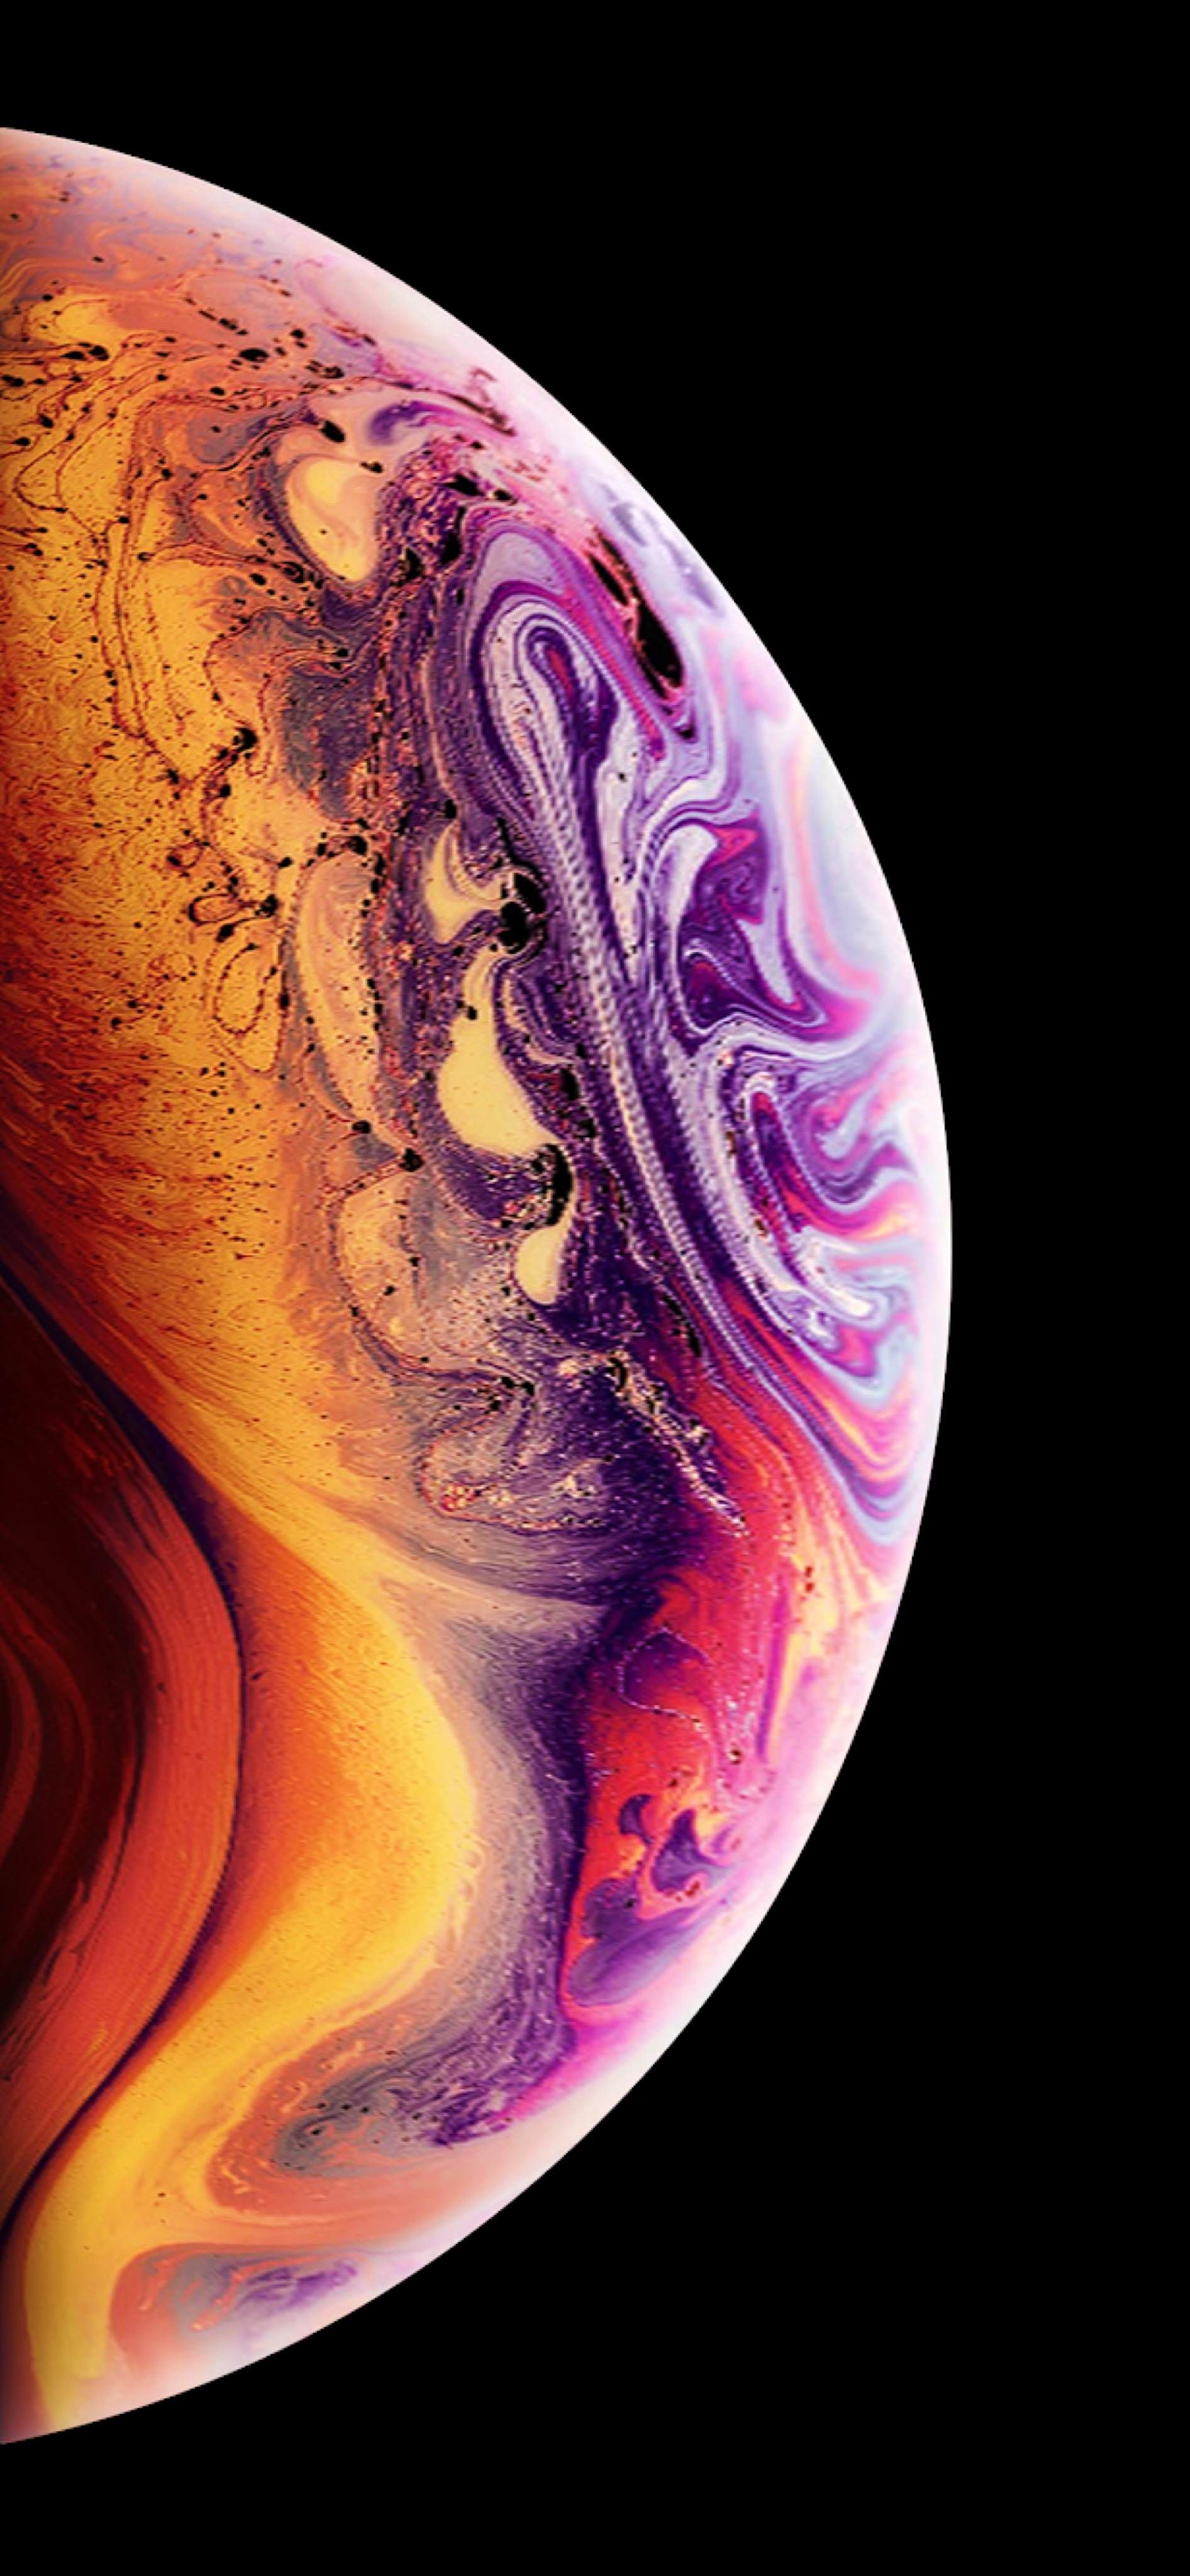 Full Res Iphone Xs Wallpaper 1892 X 4096 Apple Wallpaper Iphone Wallpaper Iphone Ios7 Iphone Wallpaper Ios